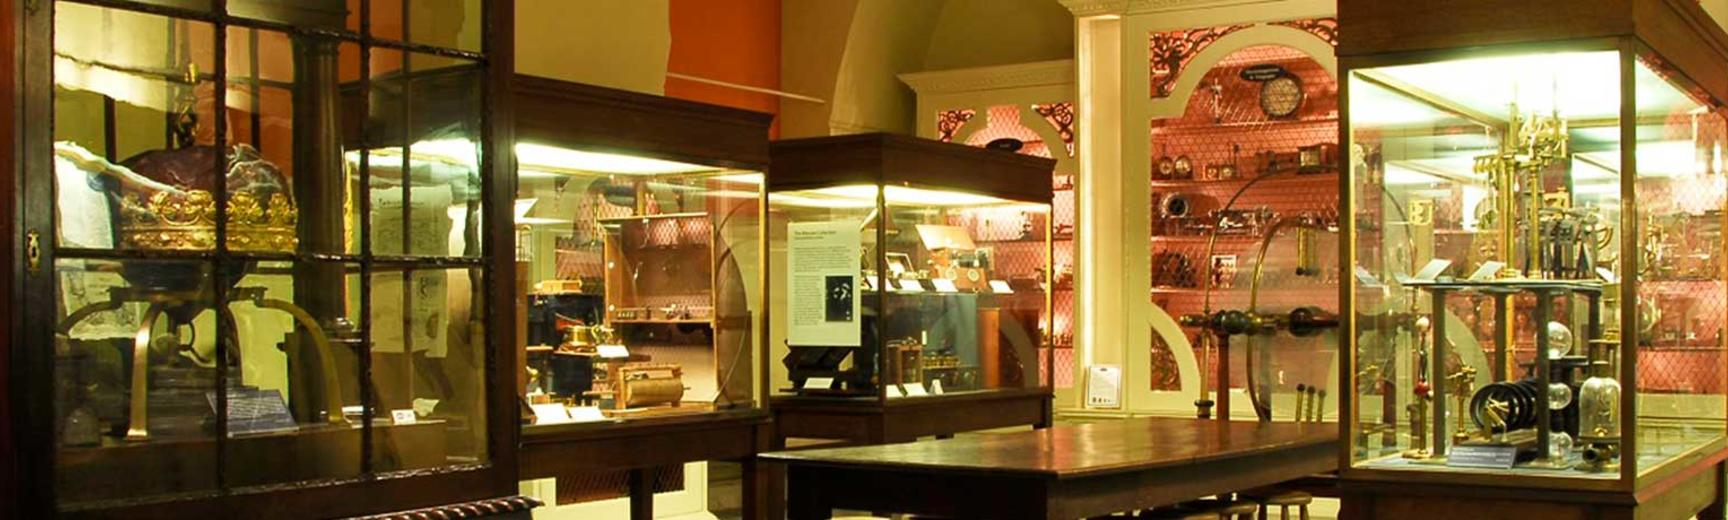 Basement Gallery, cases displaying scientific instruments, Museum of the History of Science